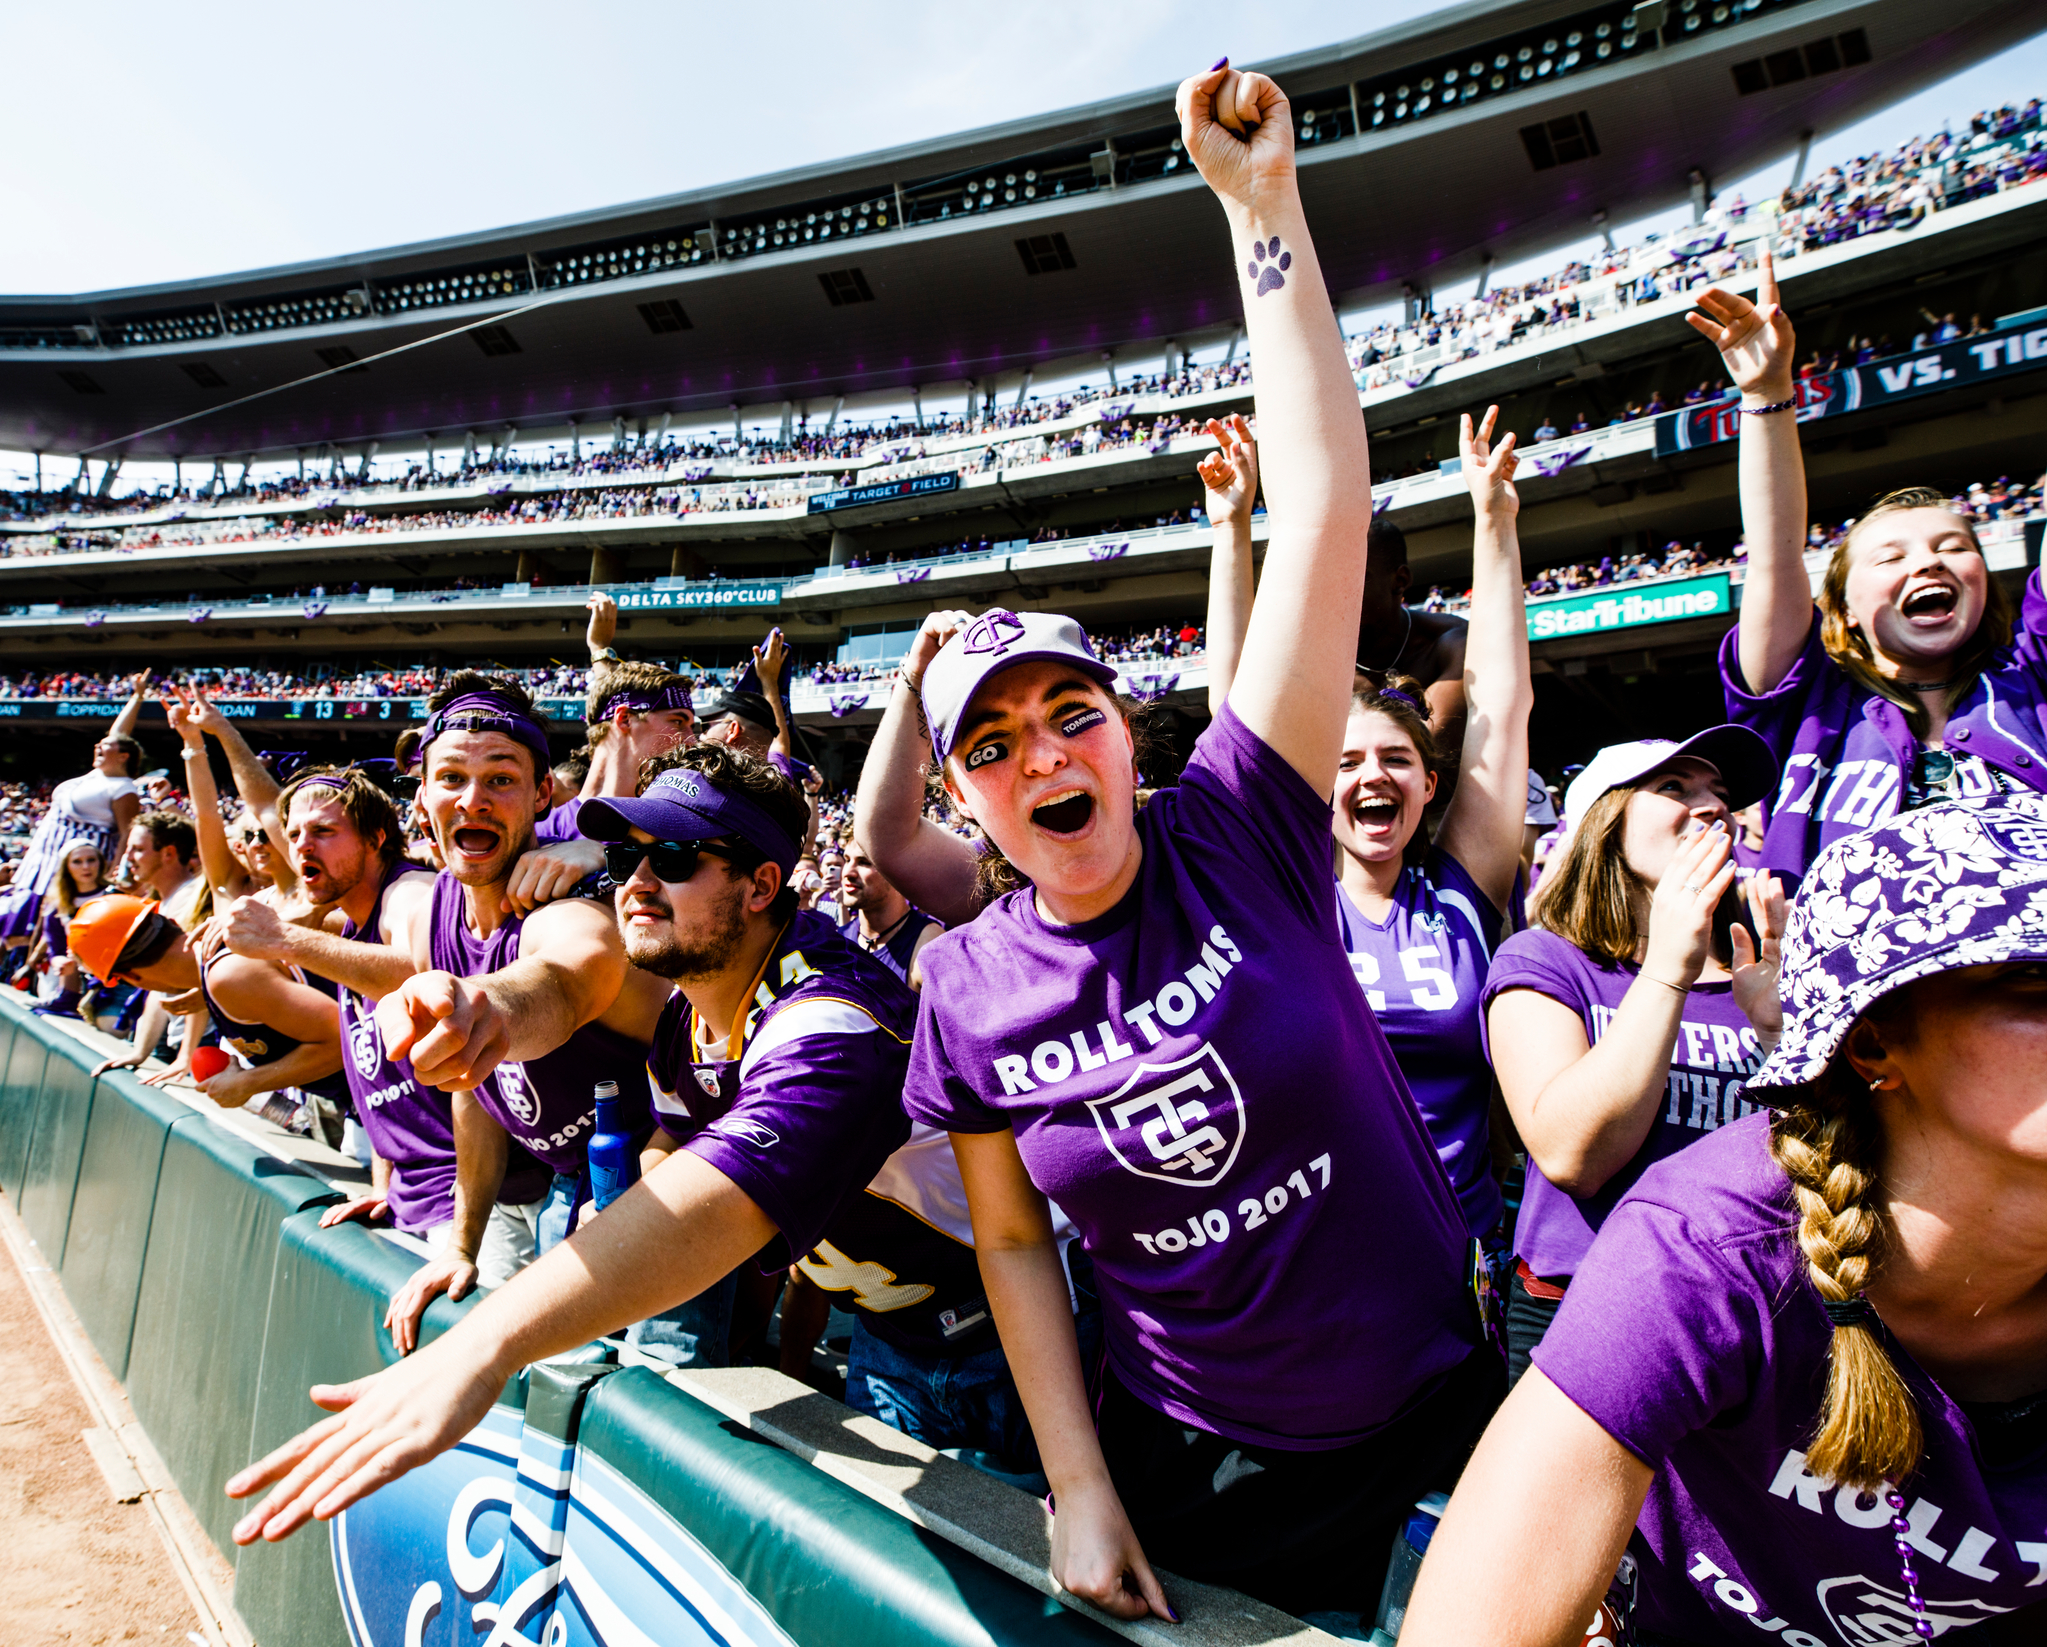 students celebrate at the 2017 tommie johnnie football game at Target Field